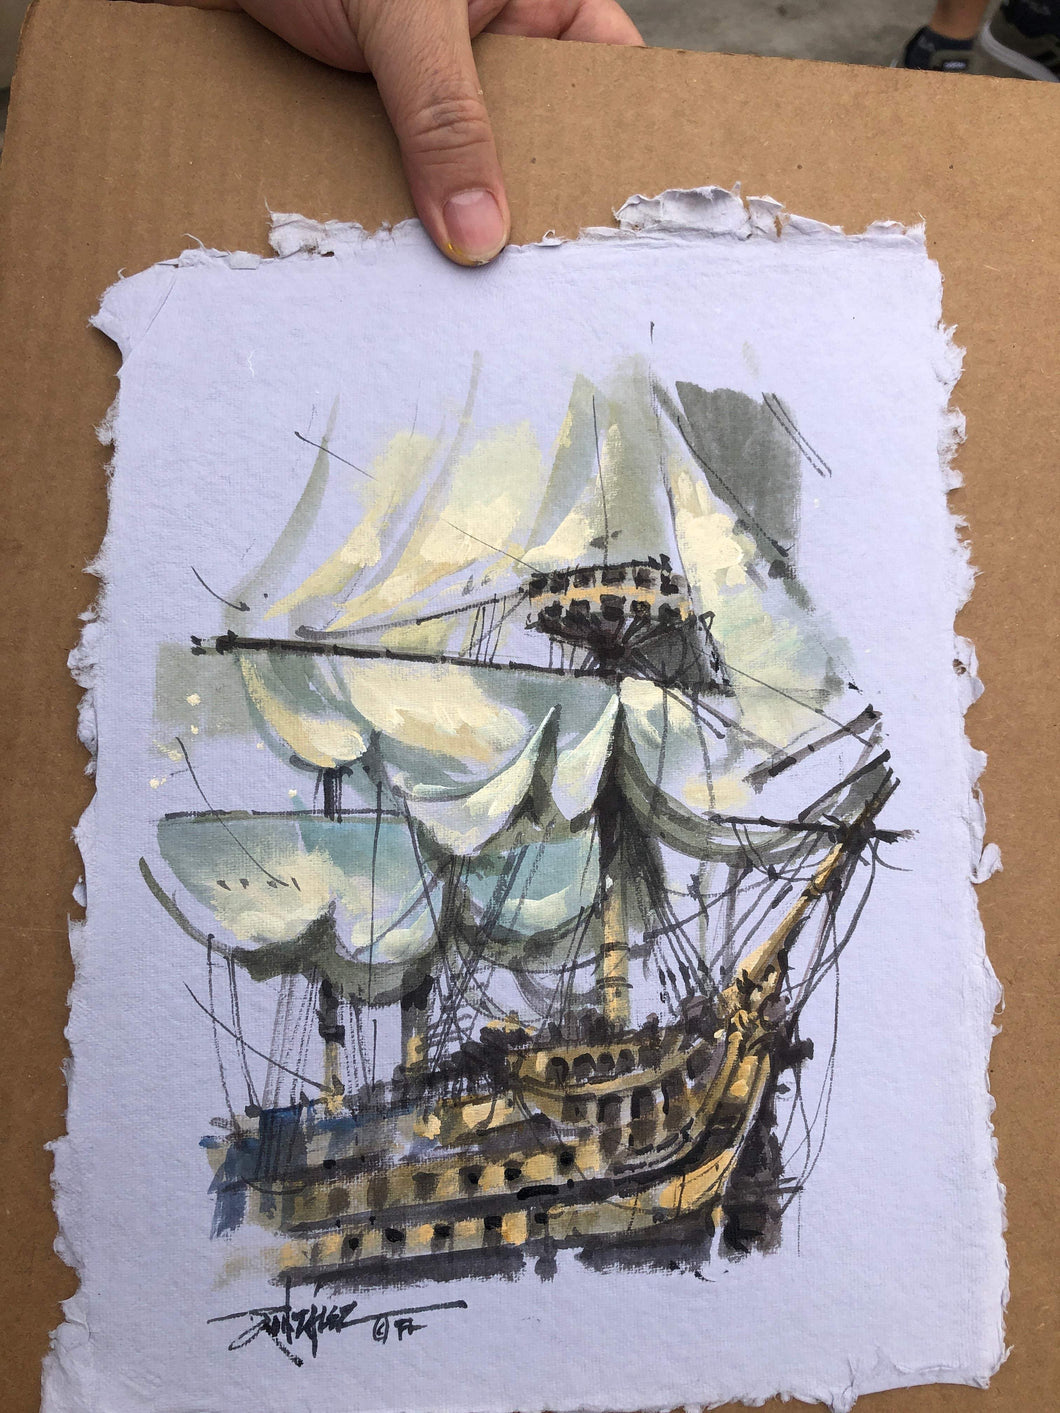 Original study by Rodel Gonzalez (Pirate Ship White)